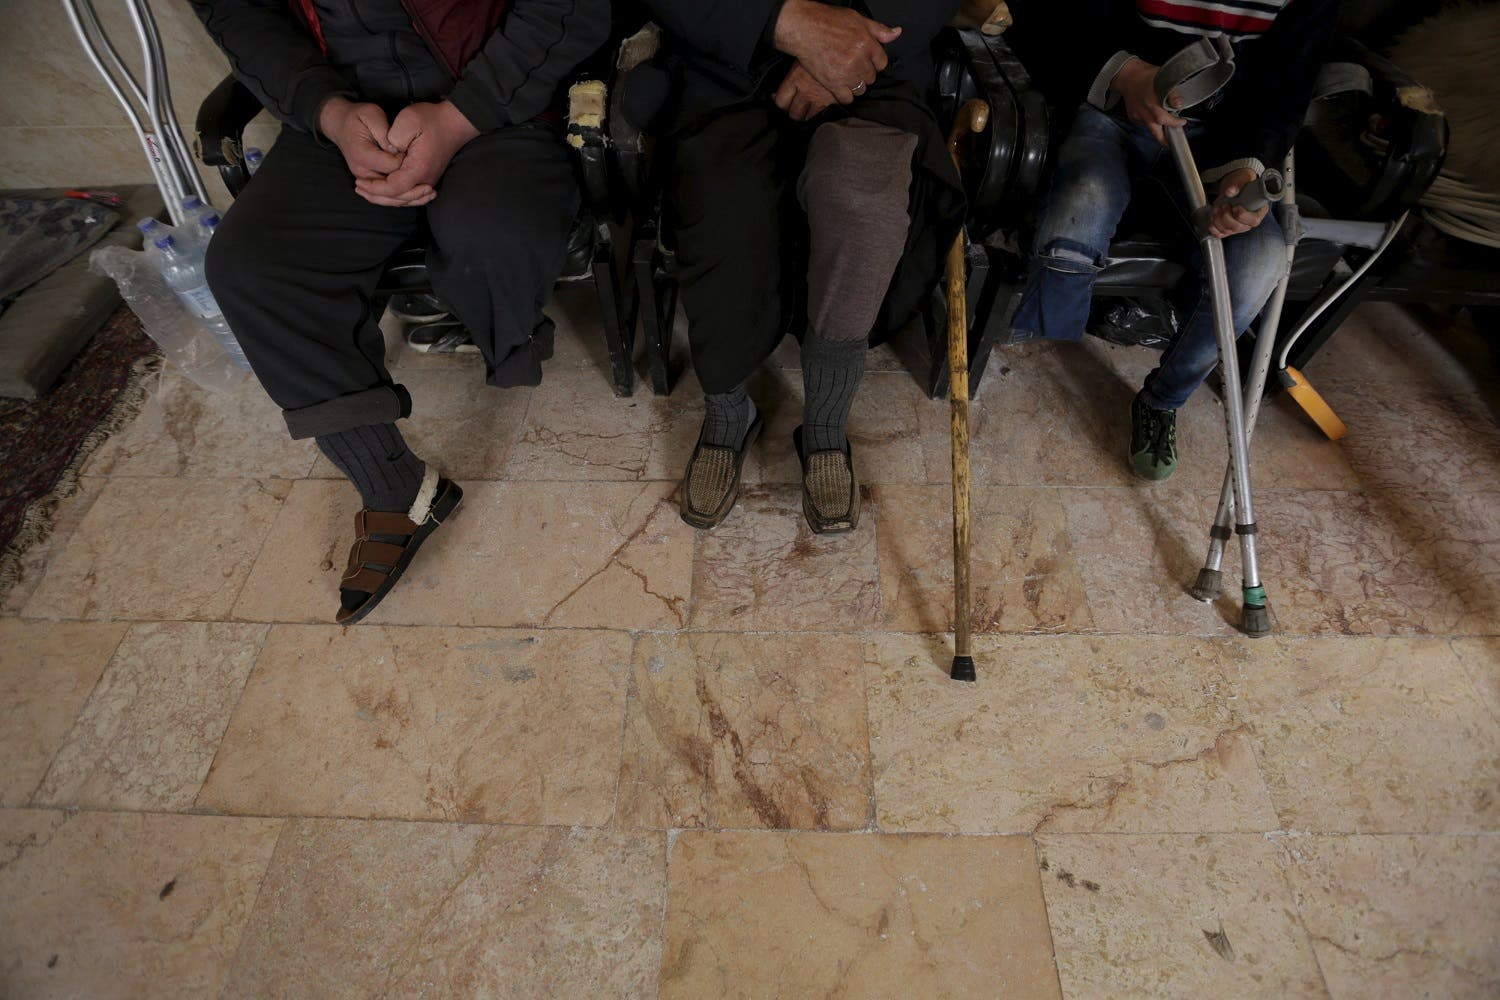 Men with amputated limbs wait to be inspected in the rebel-controlled area of Maaret al-Numan town in Idlib province, Syria March 20, 2016. REuter